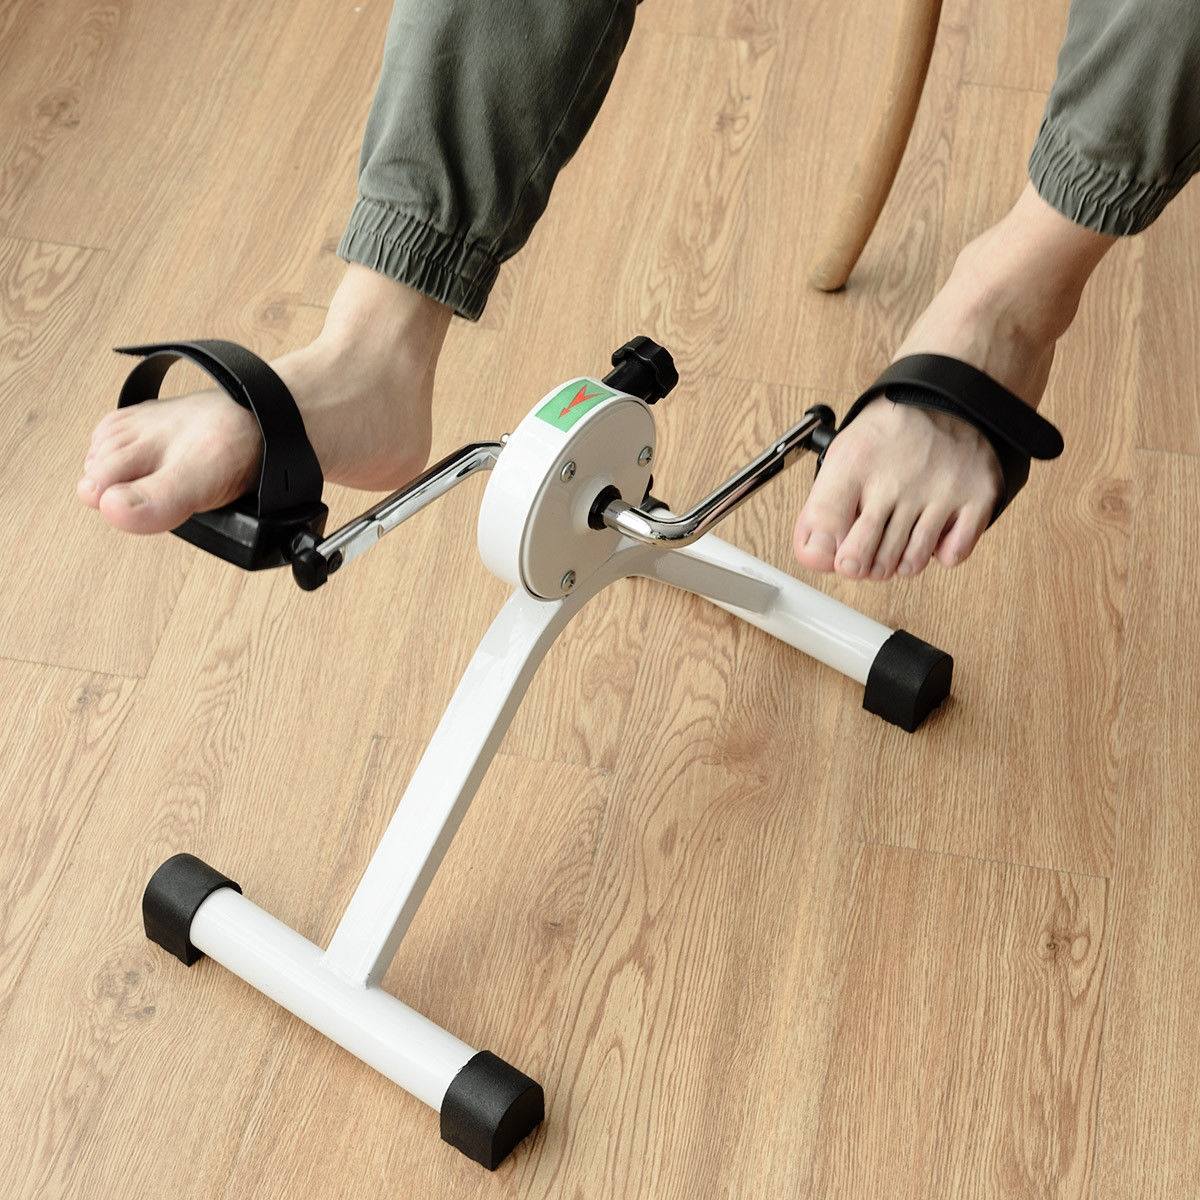 Resistance  Adjustable Portable Pedal Exerciser for Arms&Legs Rehabilitation